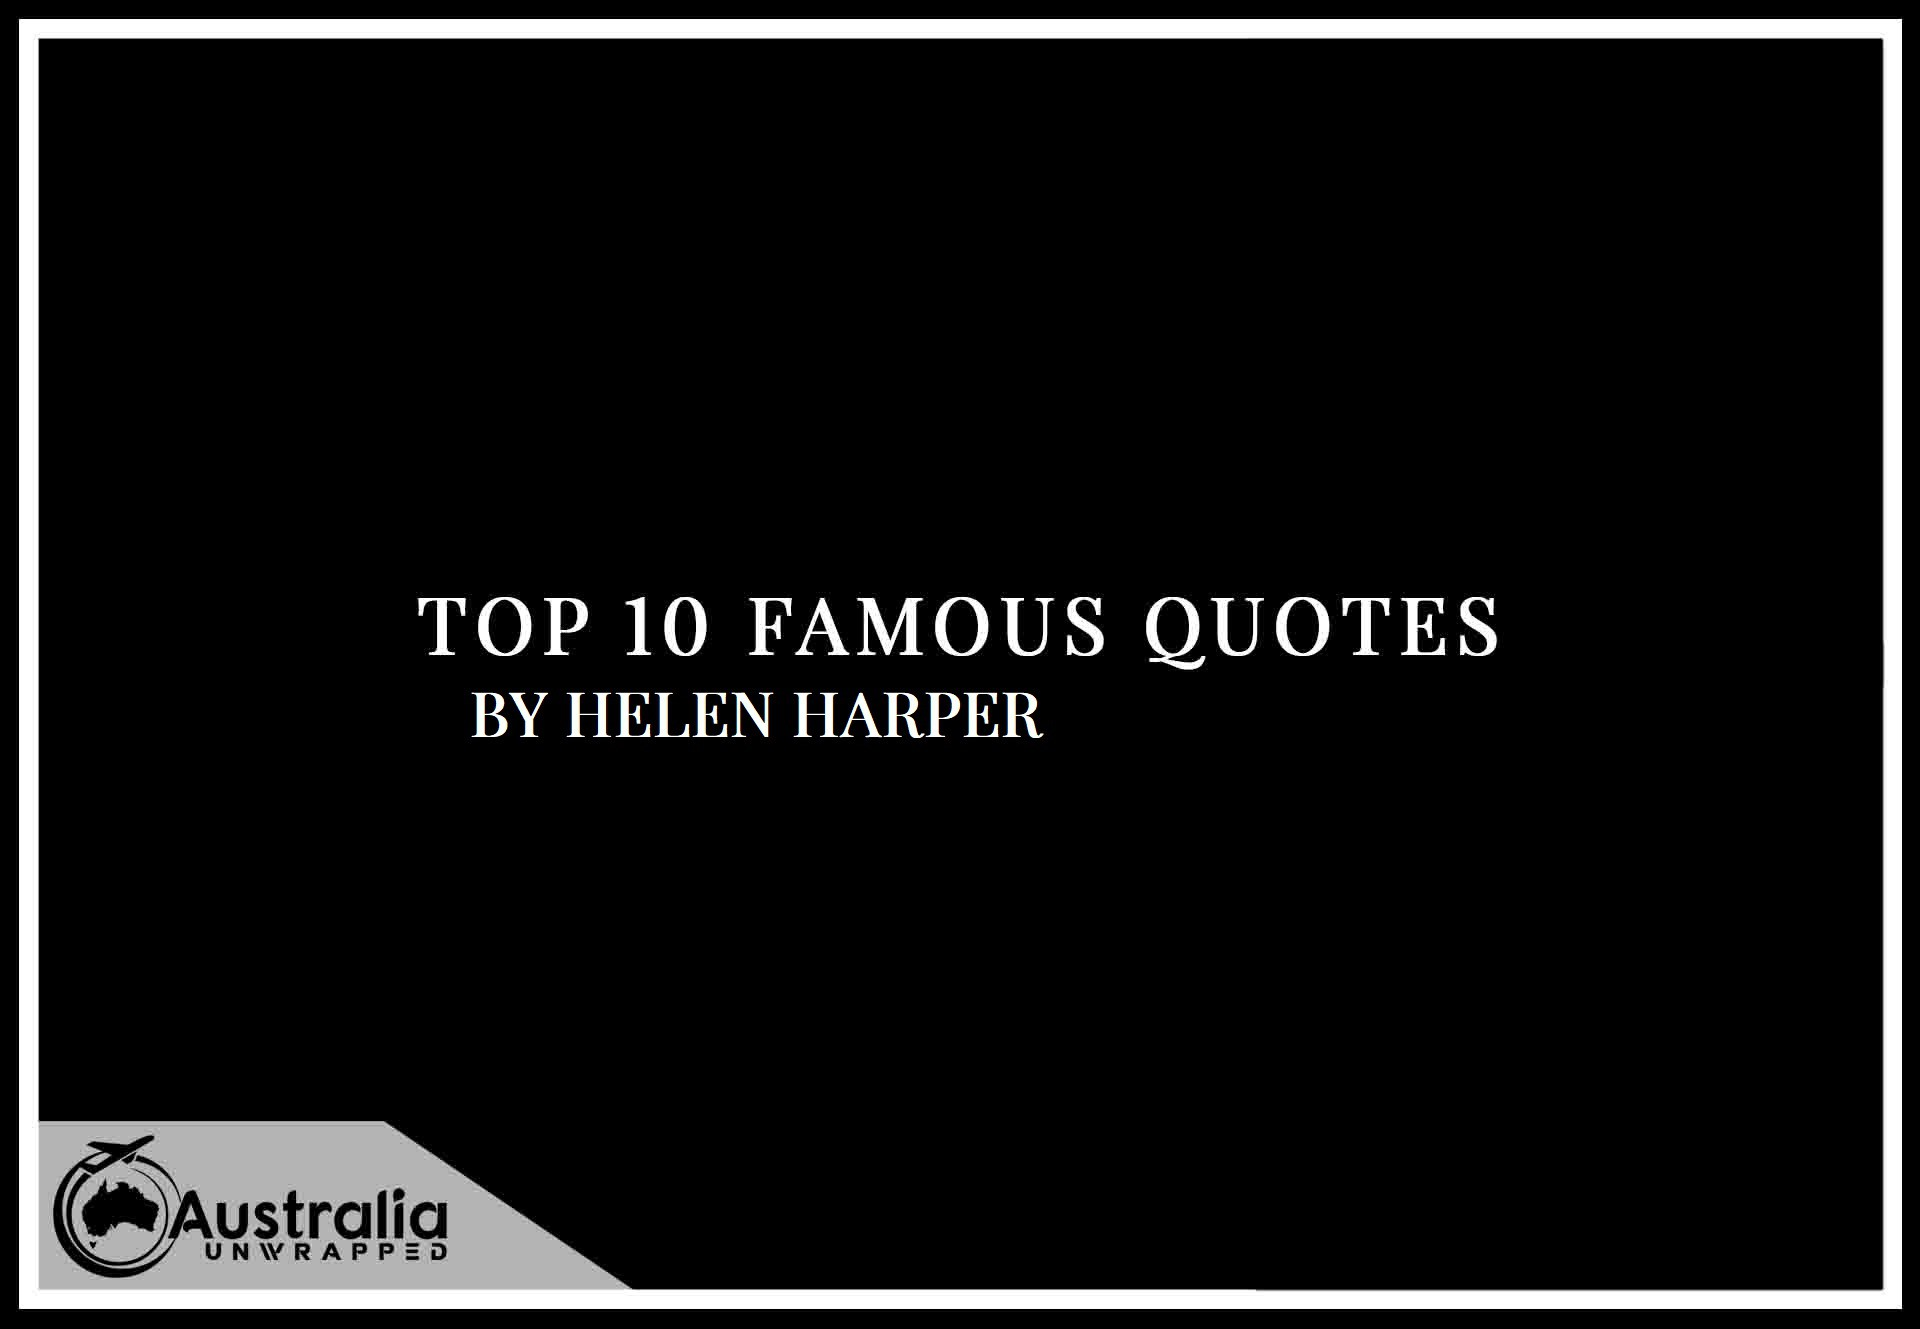 Top 10 Famous Quotes by Author Helen Harper